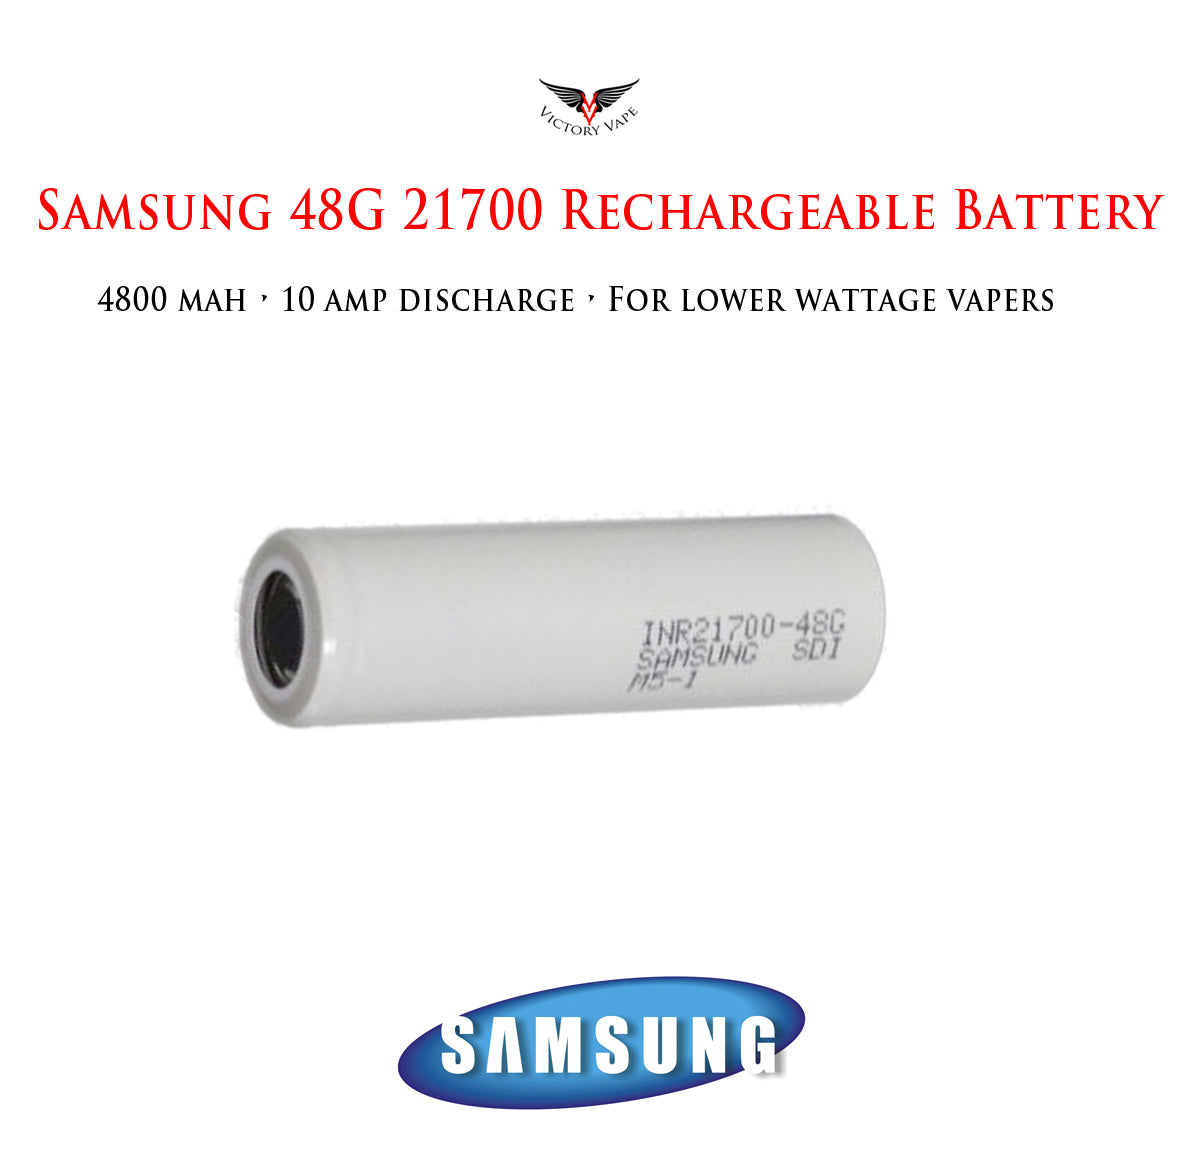 Samsung 48G 21700 • 4800mAh 10A rechargeable battery